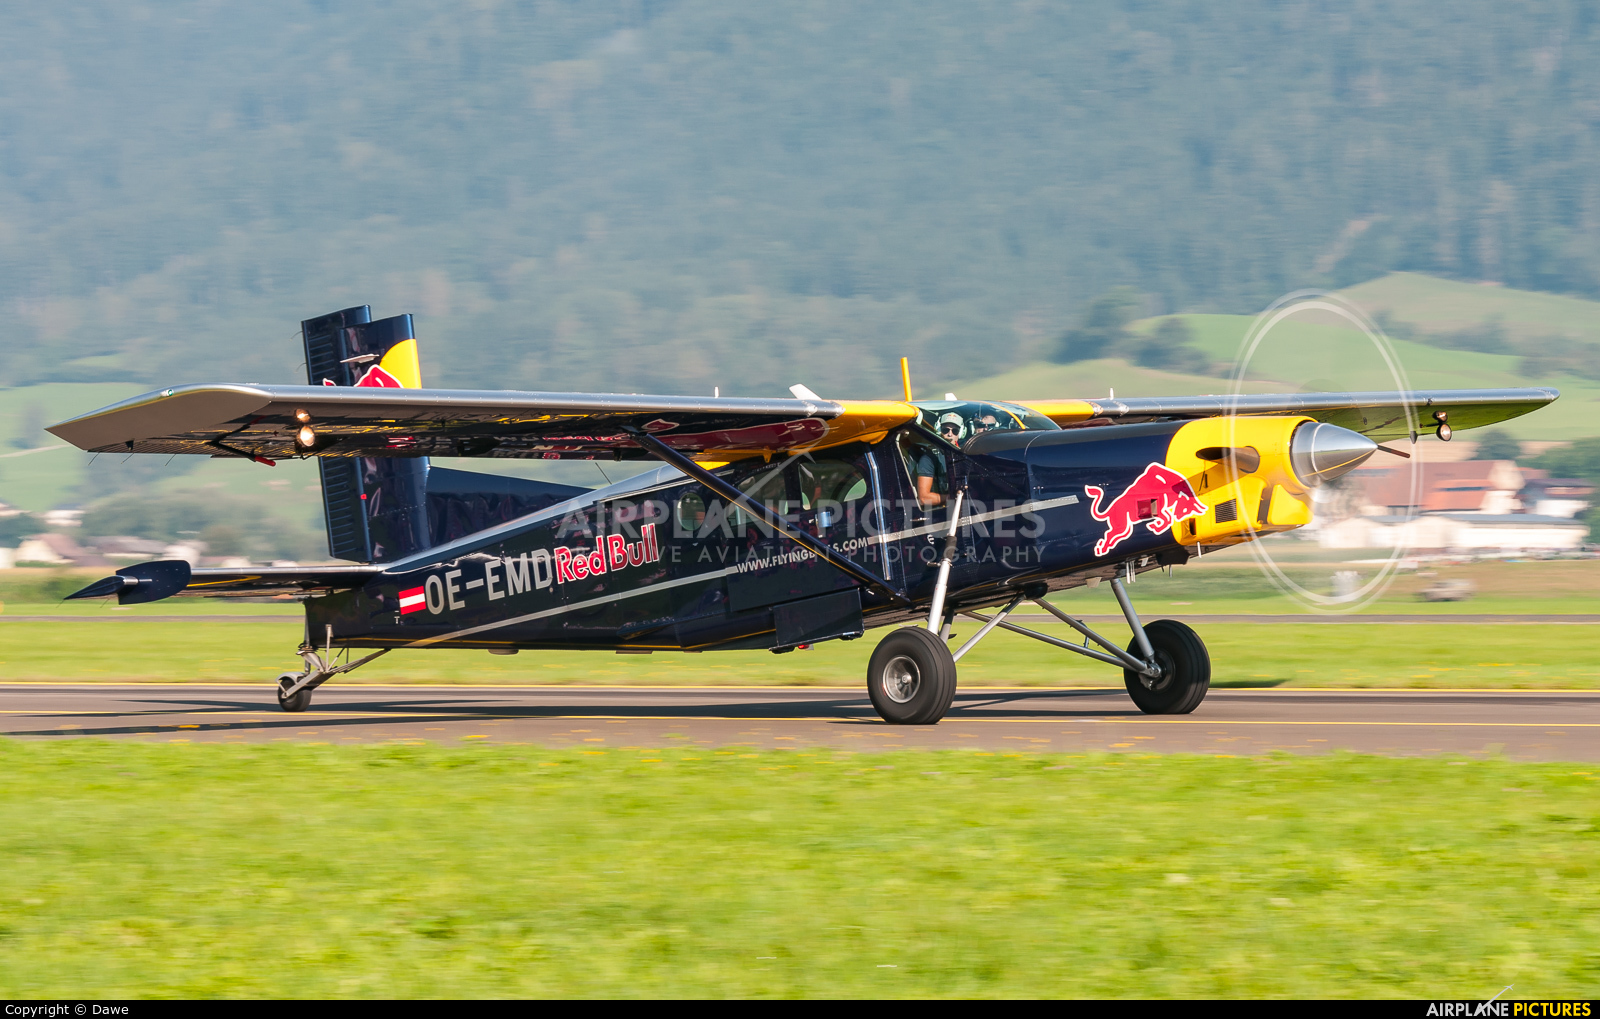 The Flying Bulls OE-EMD aircraft at Zeltweg